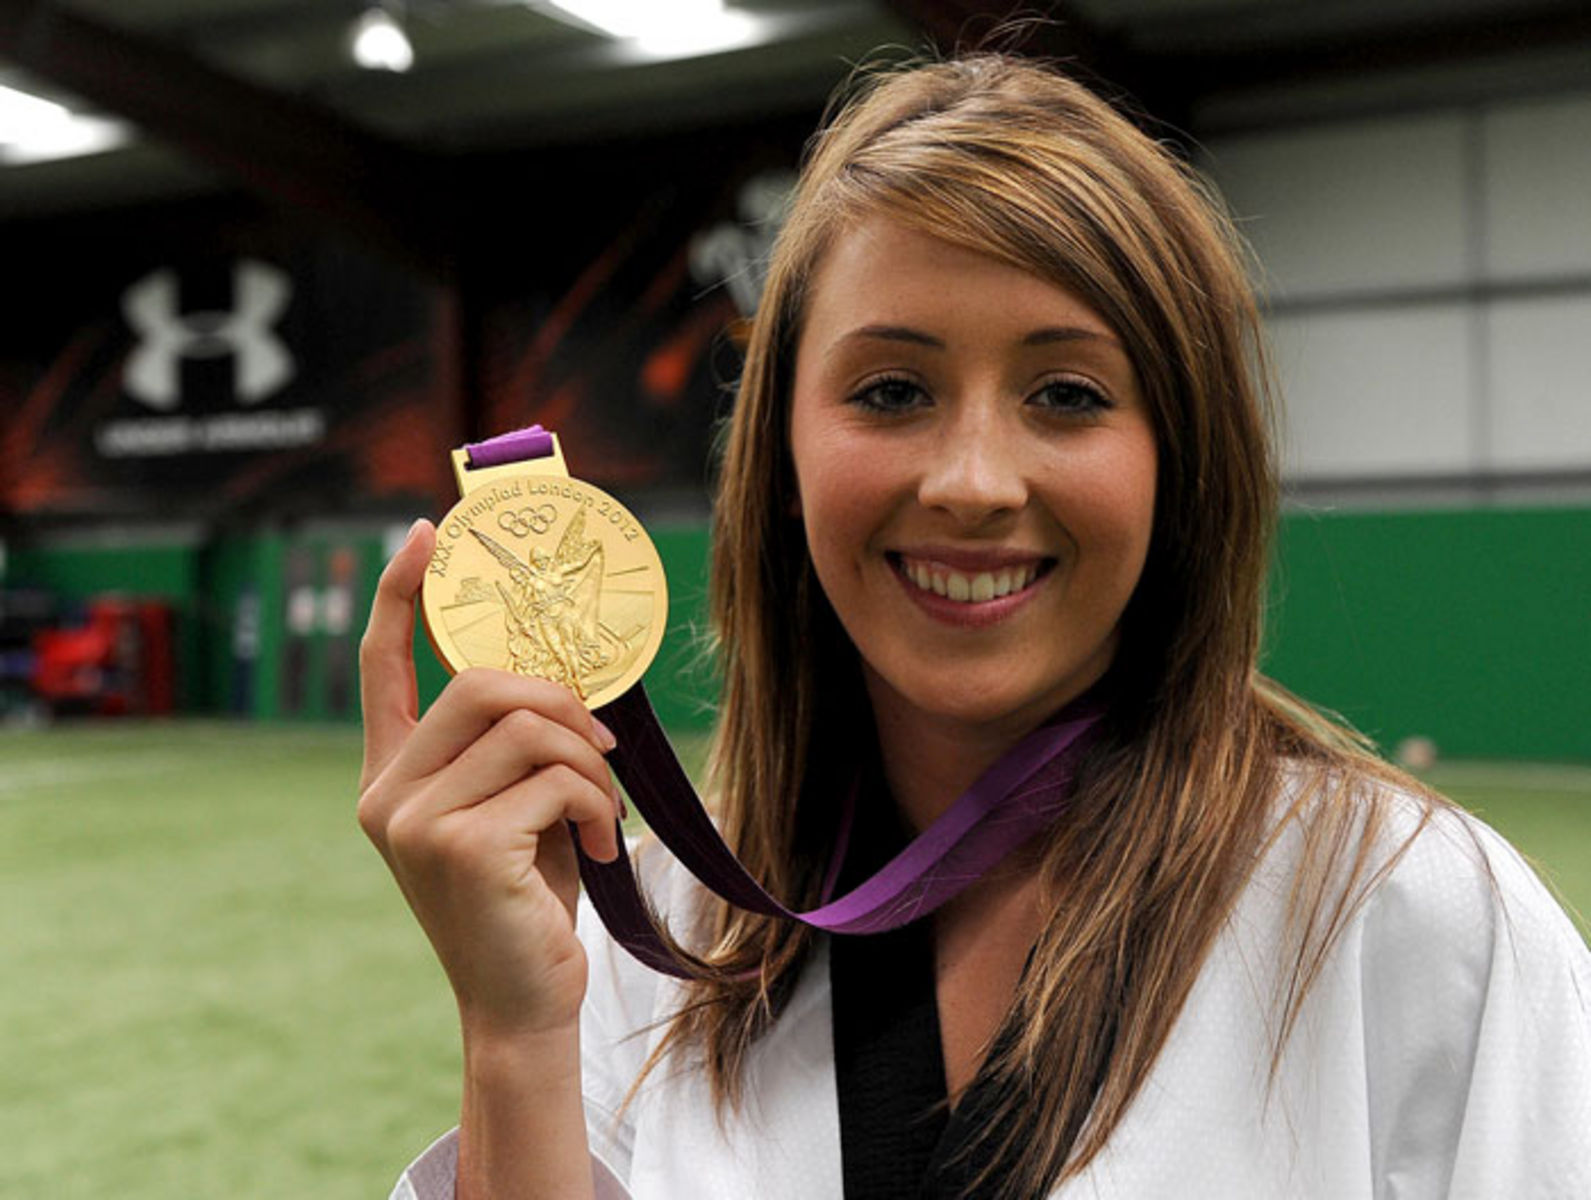 Jade Jones earned a  million dollar salary - leaving the net worth at 0.2 million in 2018